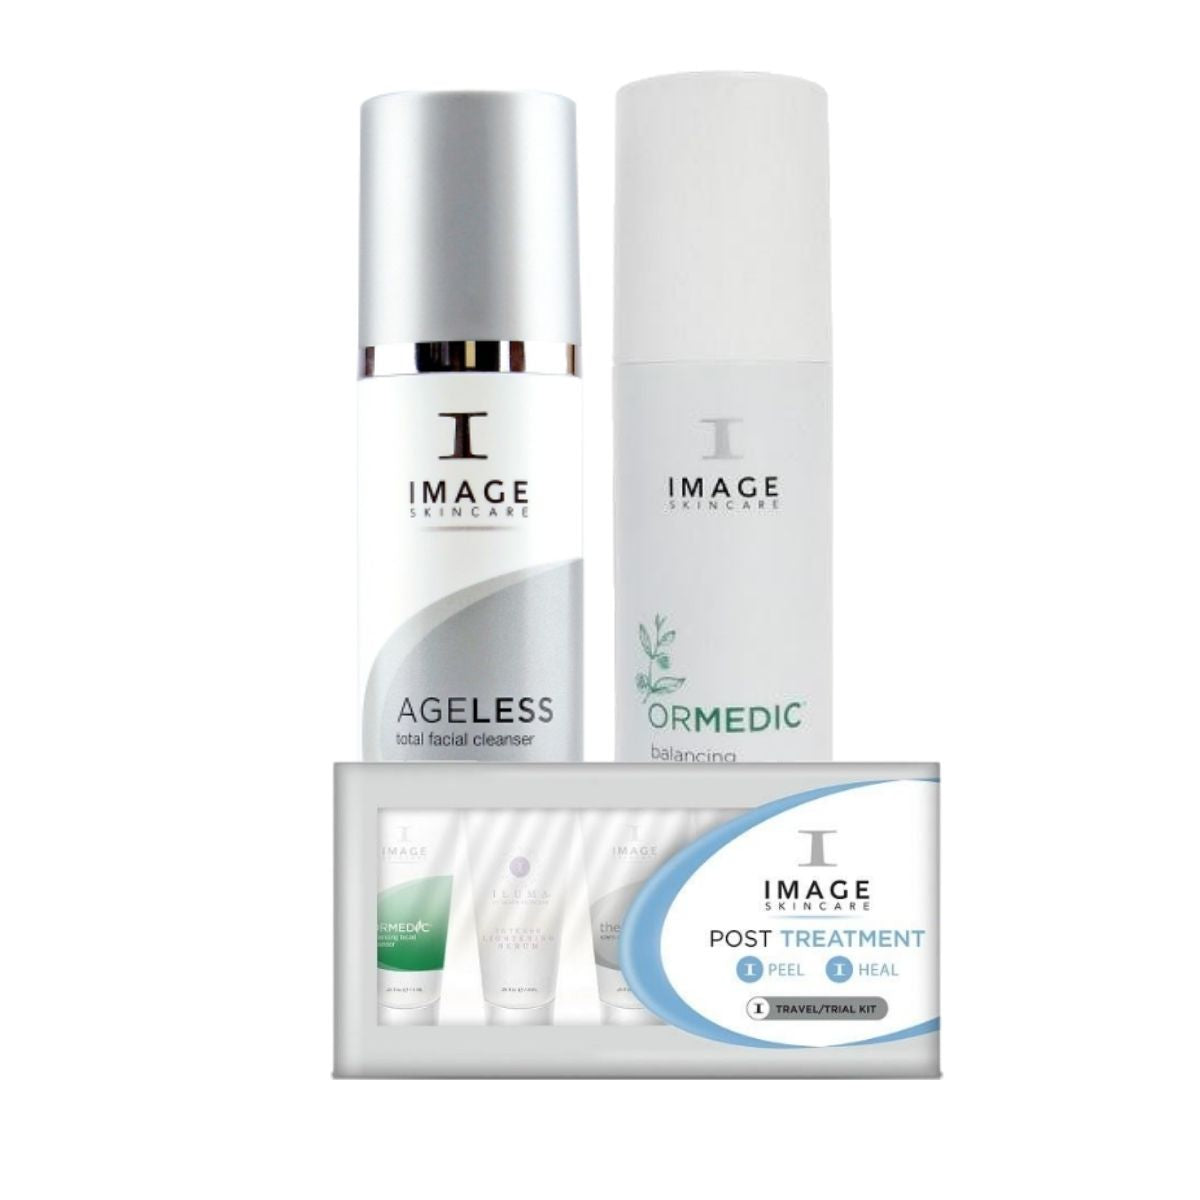 IMAGE Alternating Cleansers For Ageing/ Combo Skin Bundle